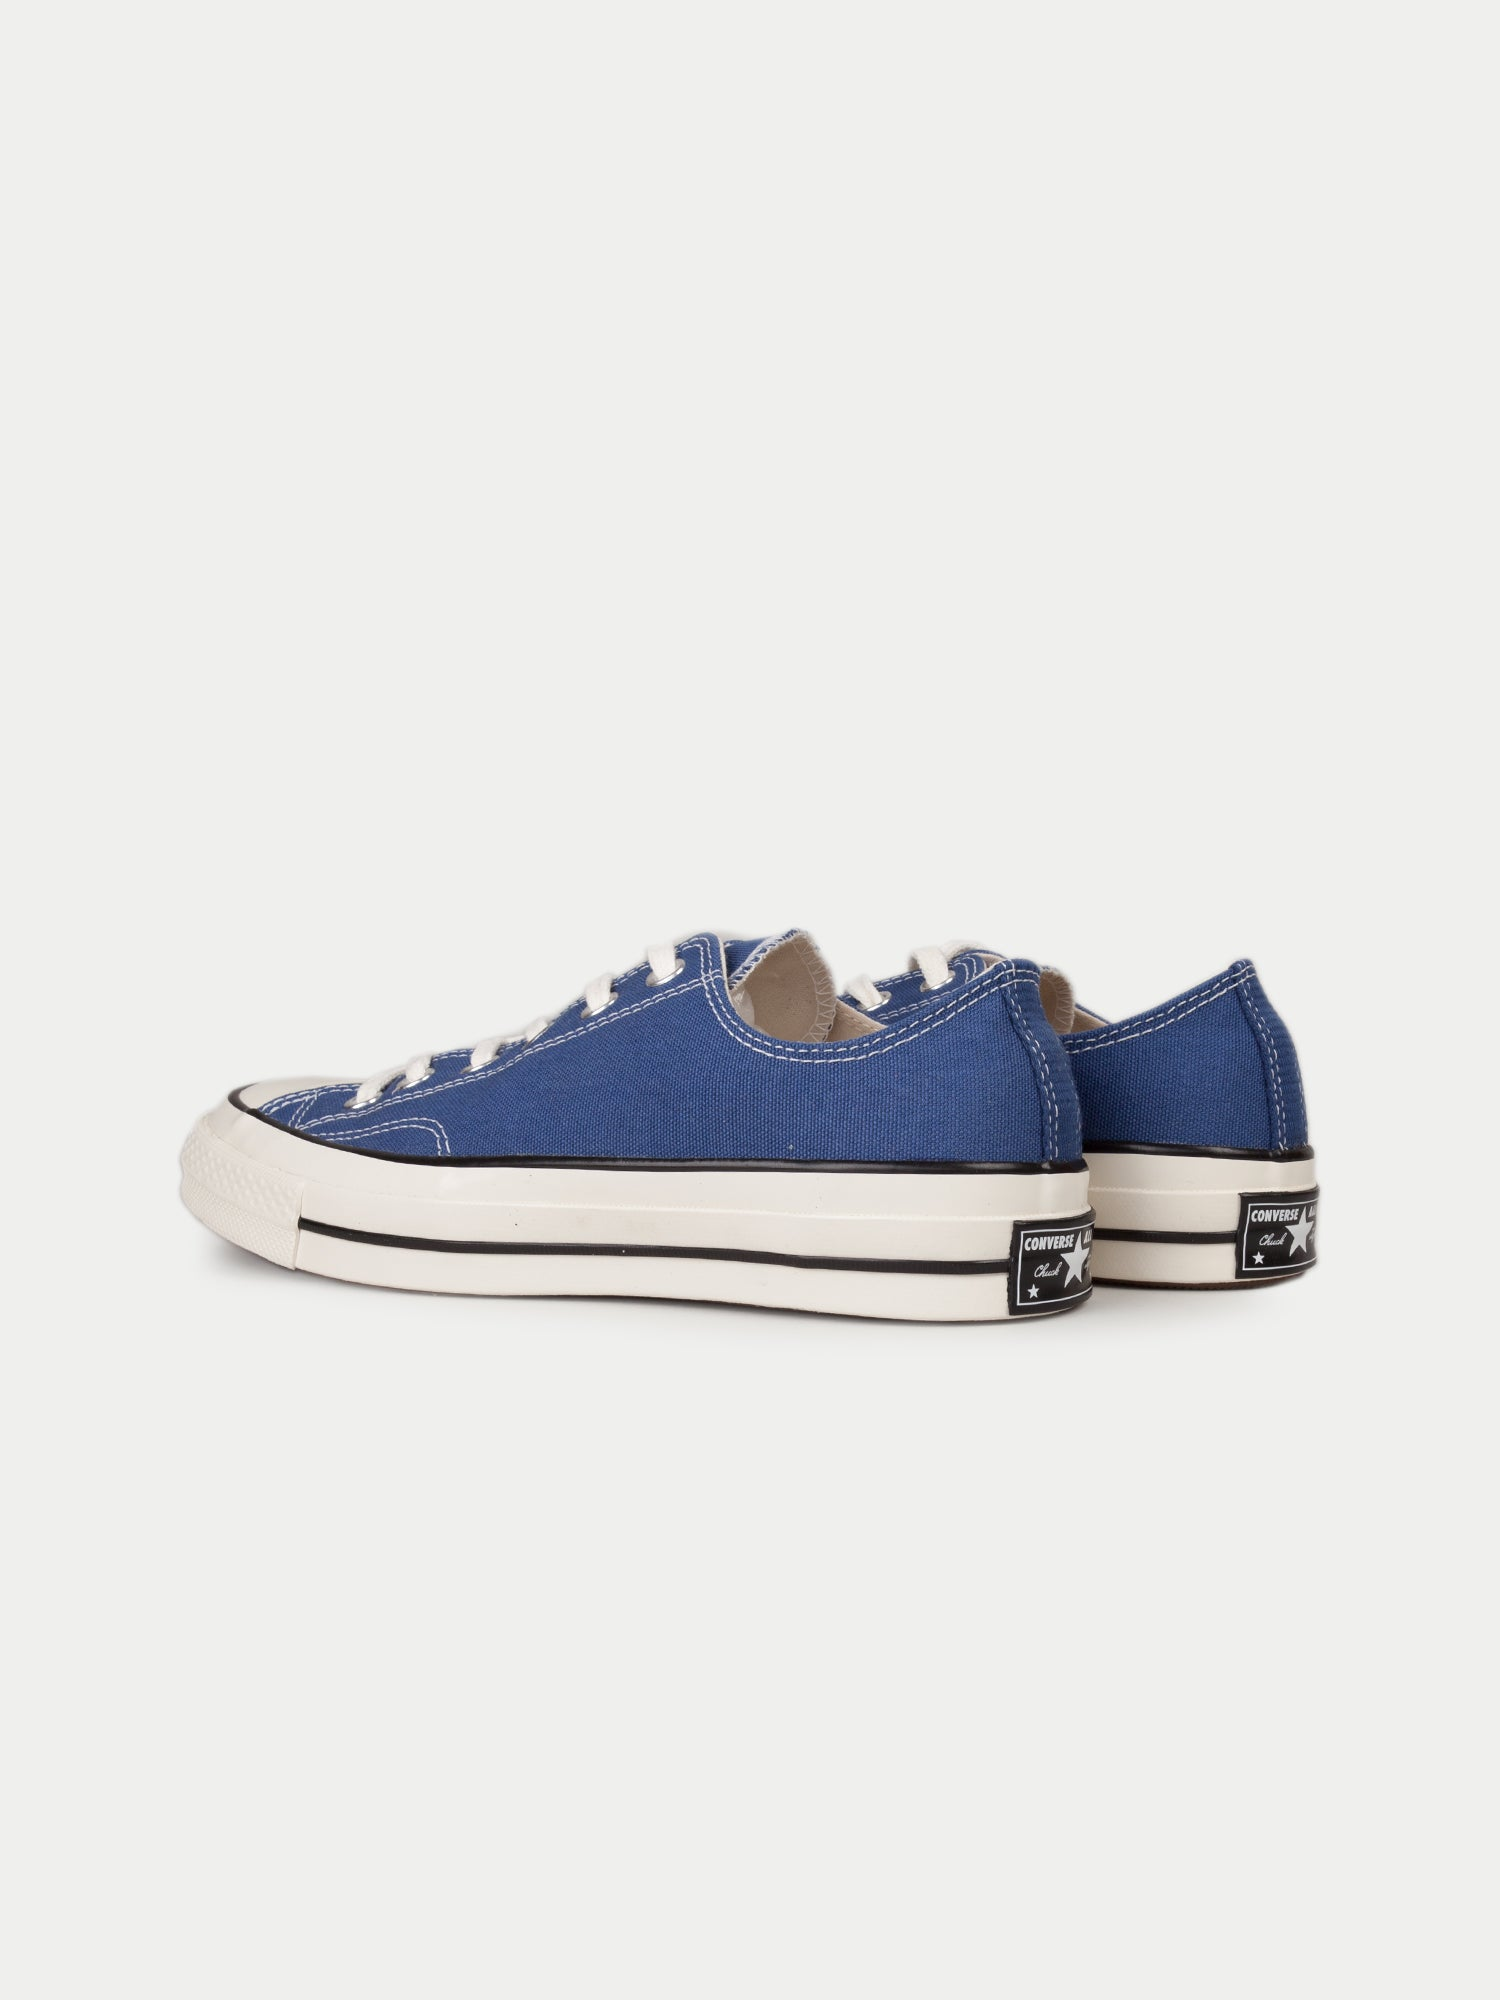 3d4d4fd84985 Converse Chuck Taylor All Star 70  Ox (True Navy)